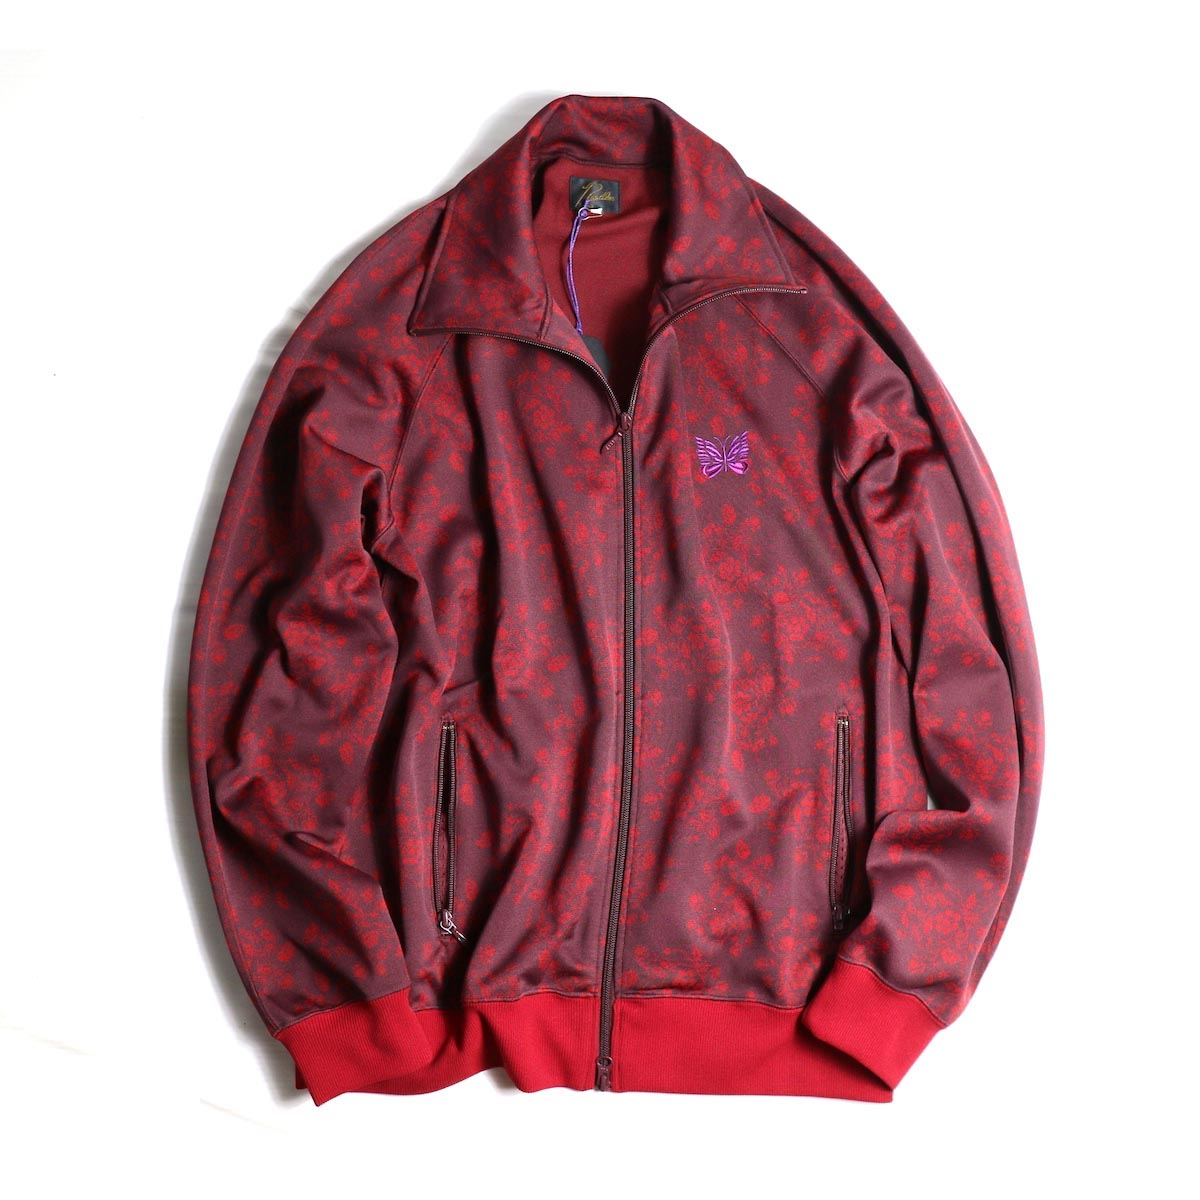 NEEDLES / TRACK JACKET - POLY JACQUARD / FLOWER (RED)